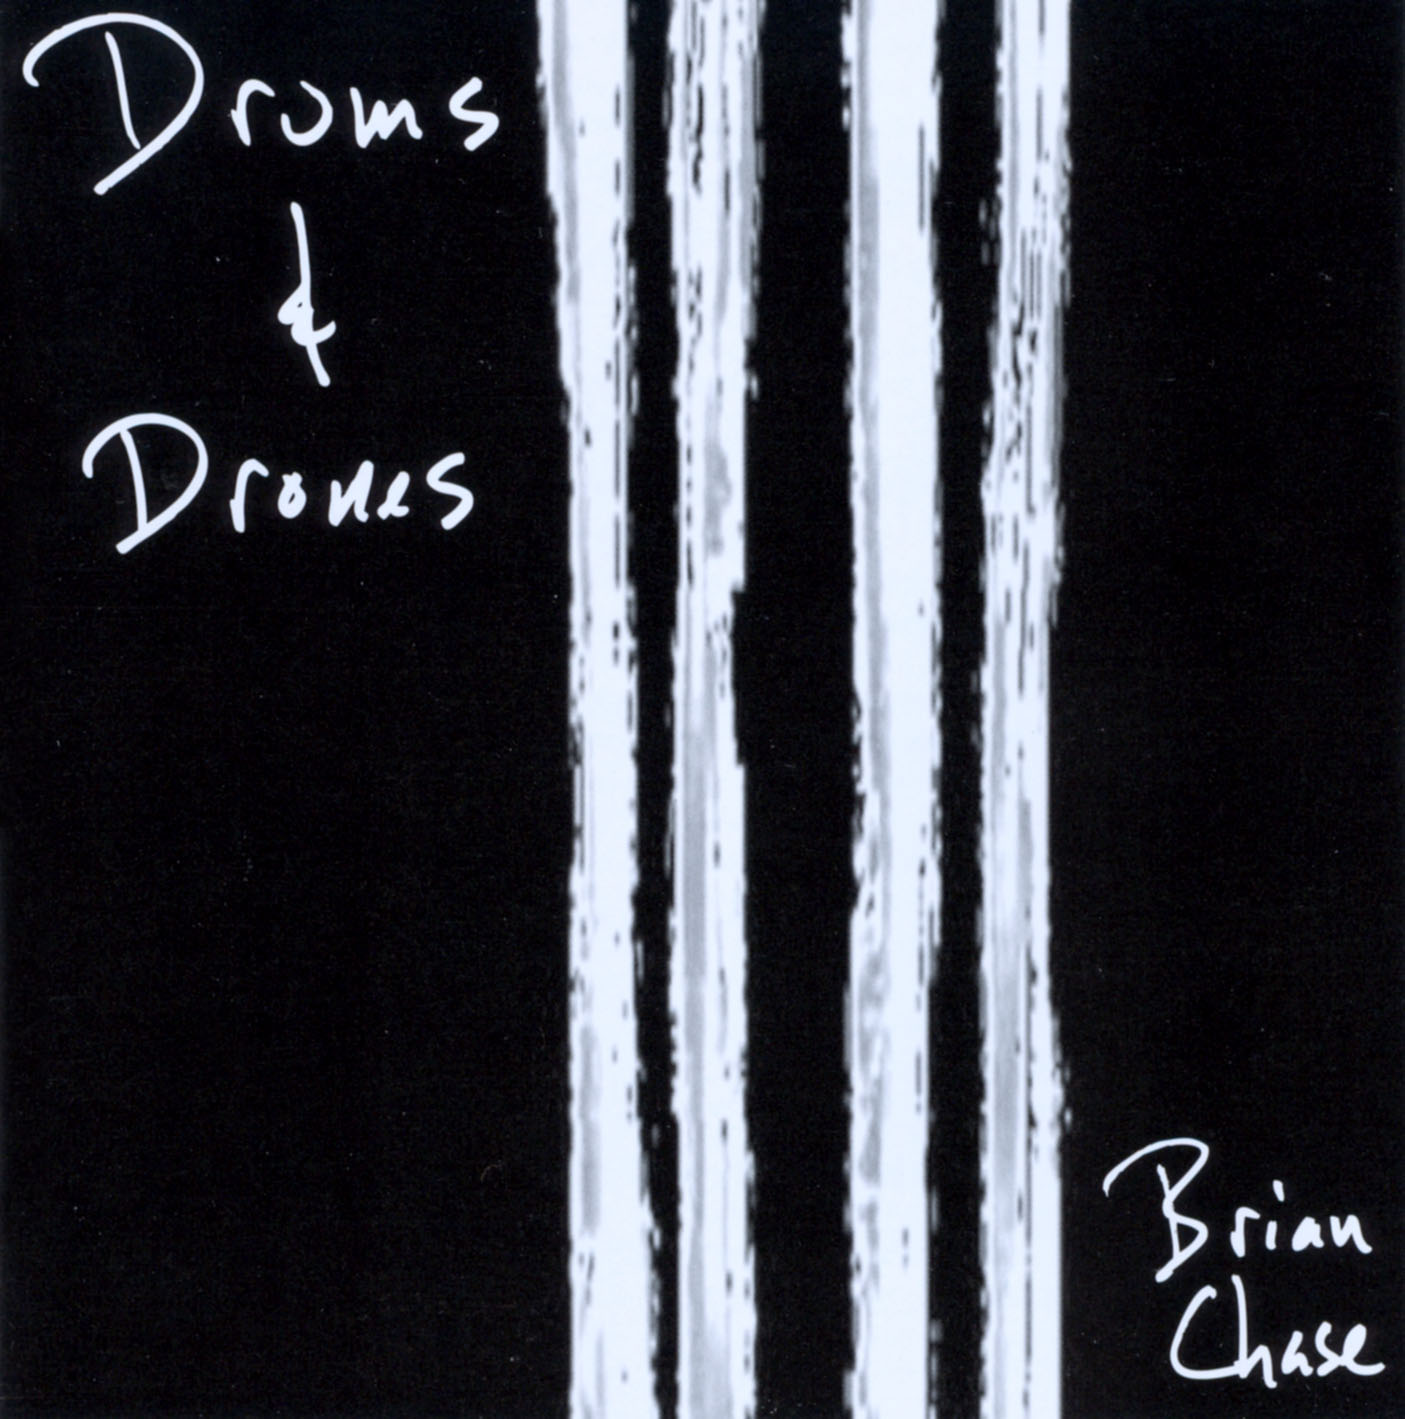 Brian Chase: Drums & Drones